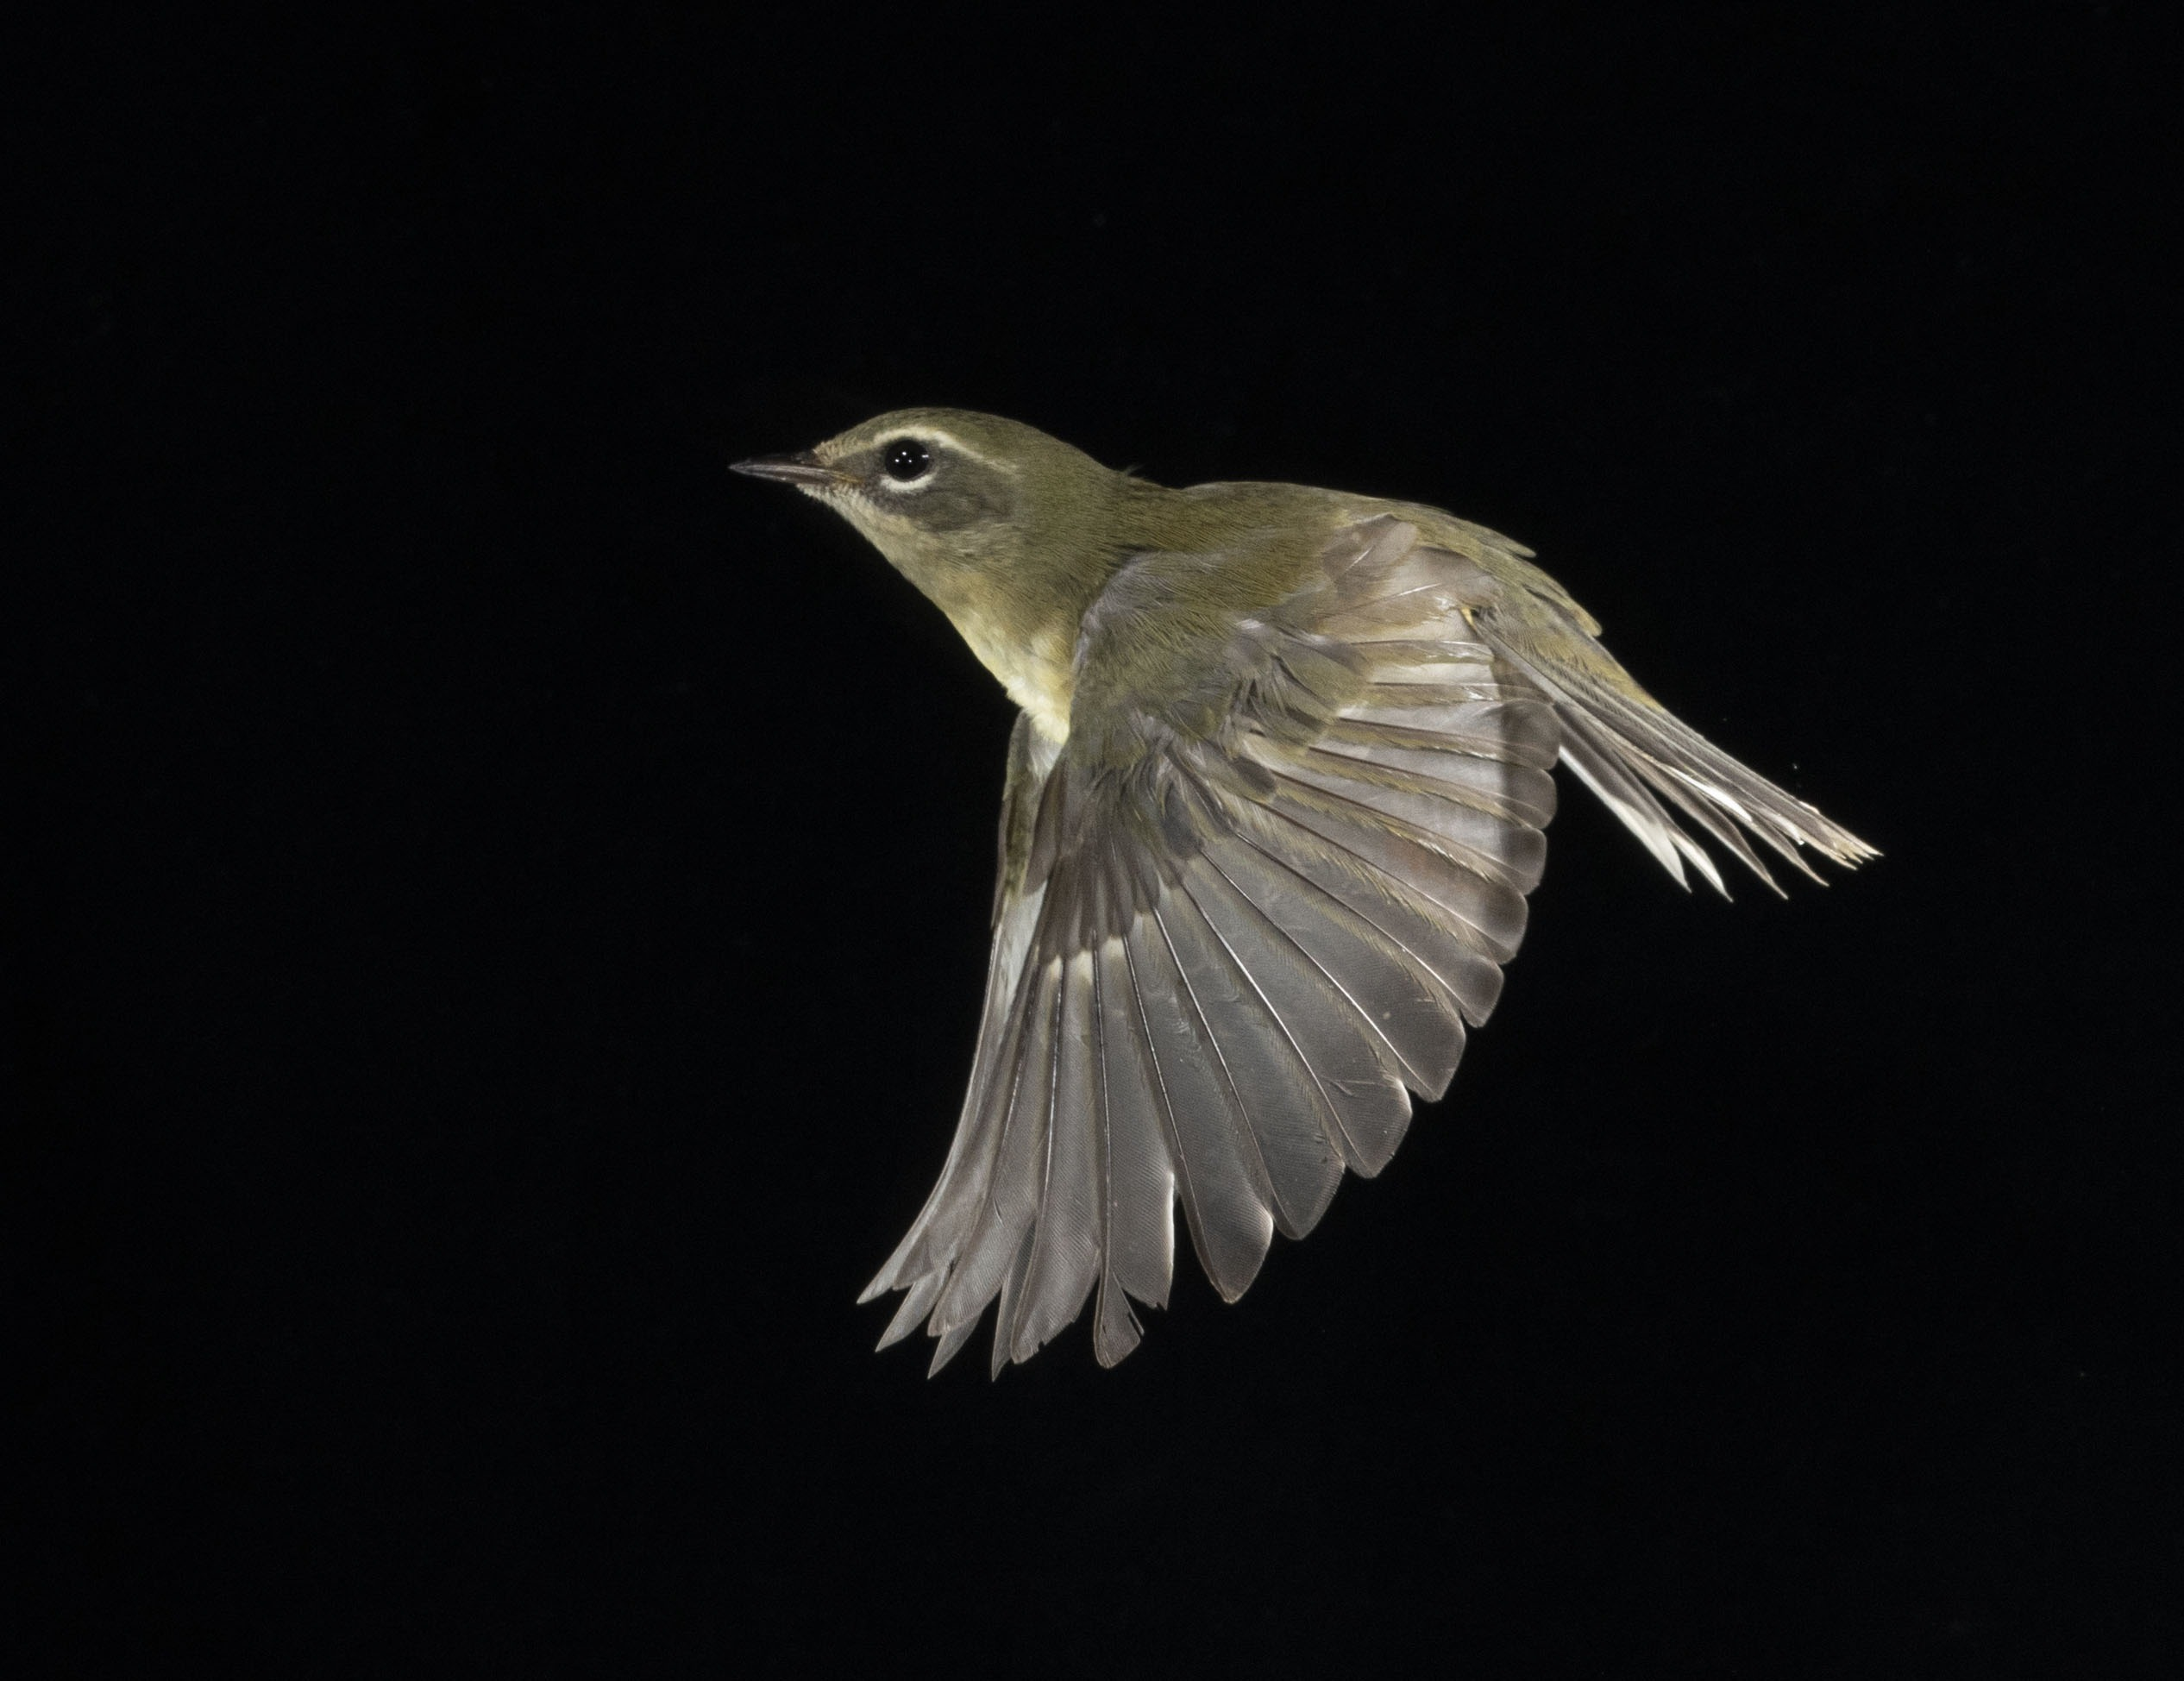 Black-throated Blue Warbler in flight with a black background